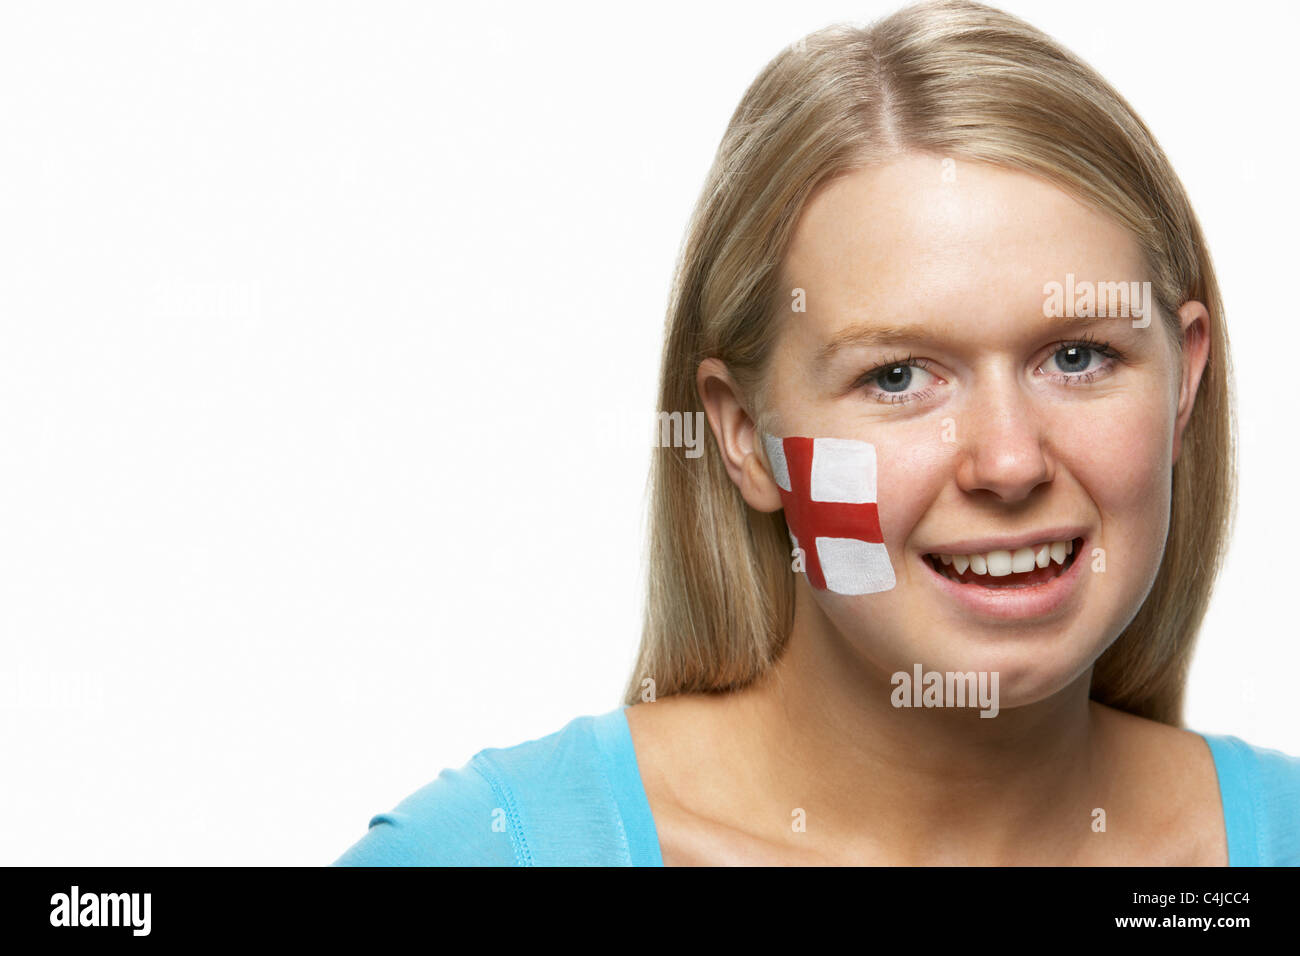 Young Female Sports Fan With St Georges Flag Painted On Face - Stock Image